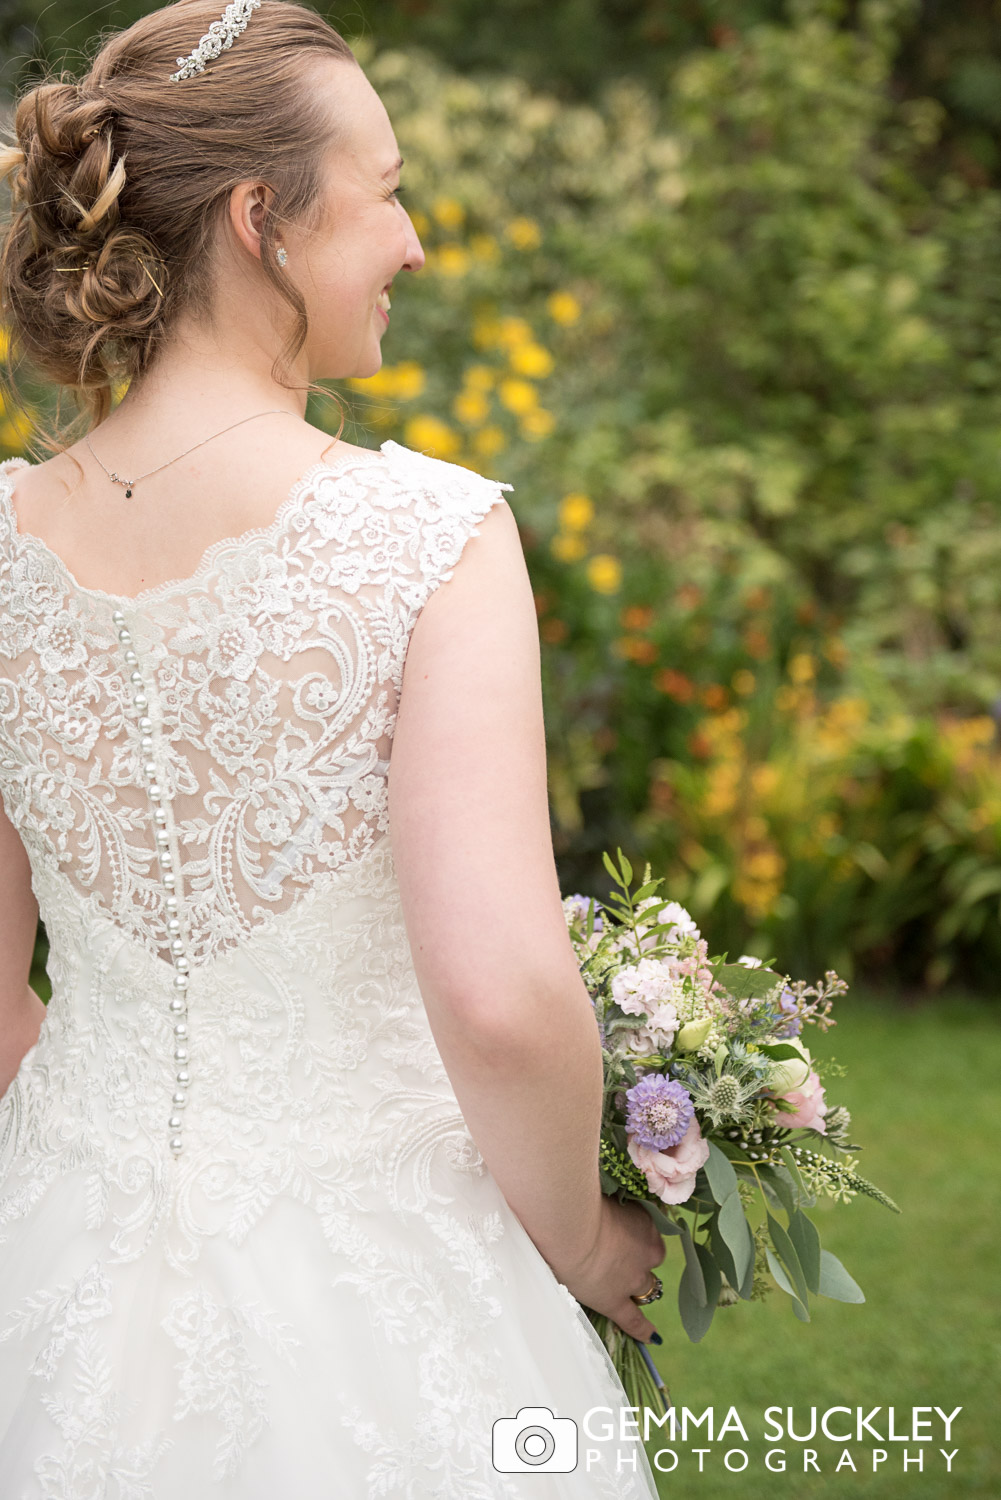 the back of a bride wedding dress detail in the garden at east riddlesden hall